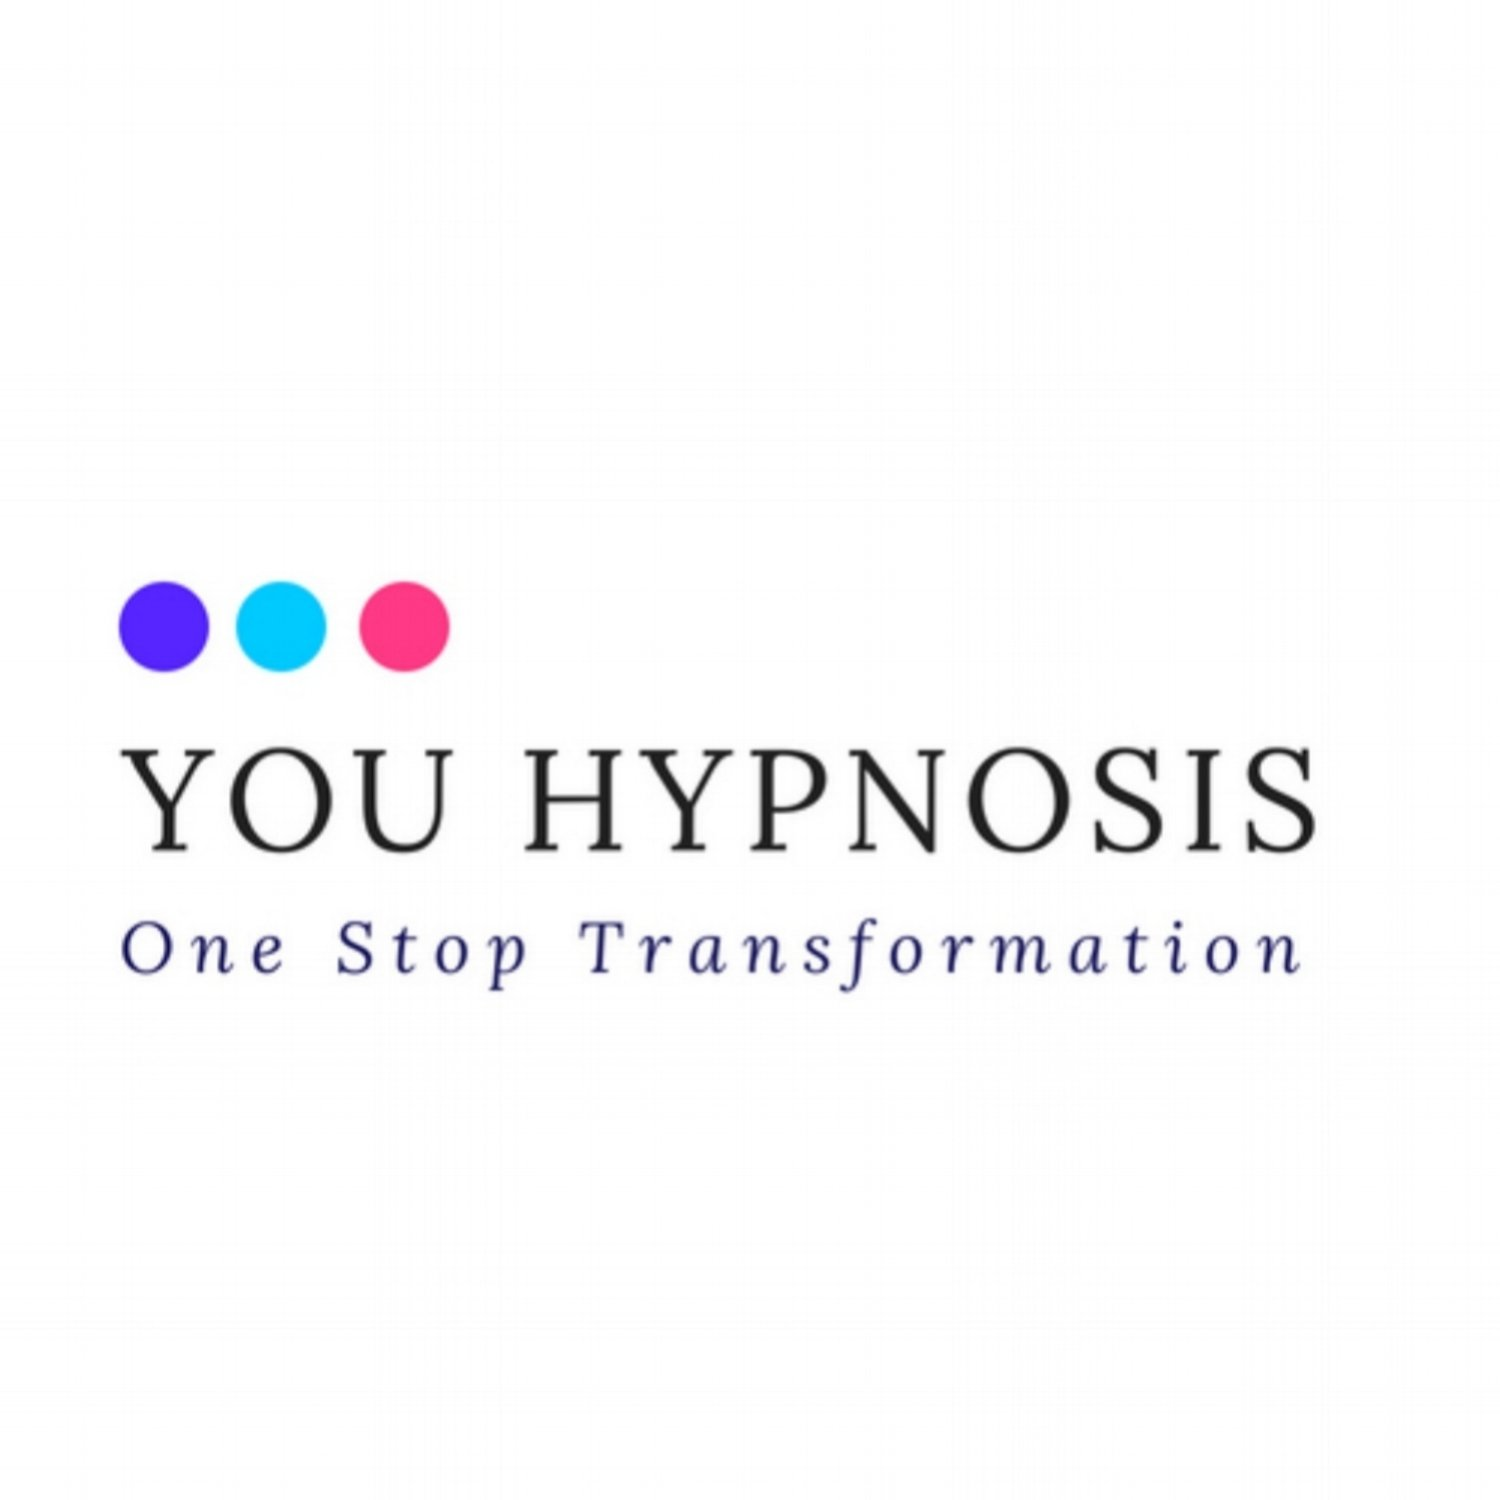 You Hypnosis